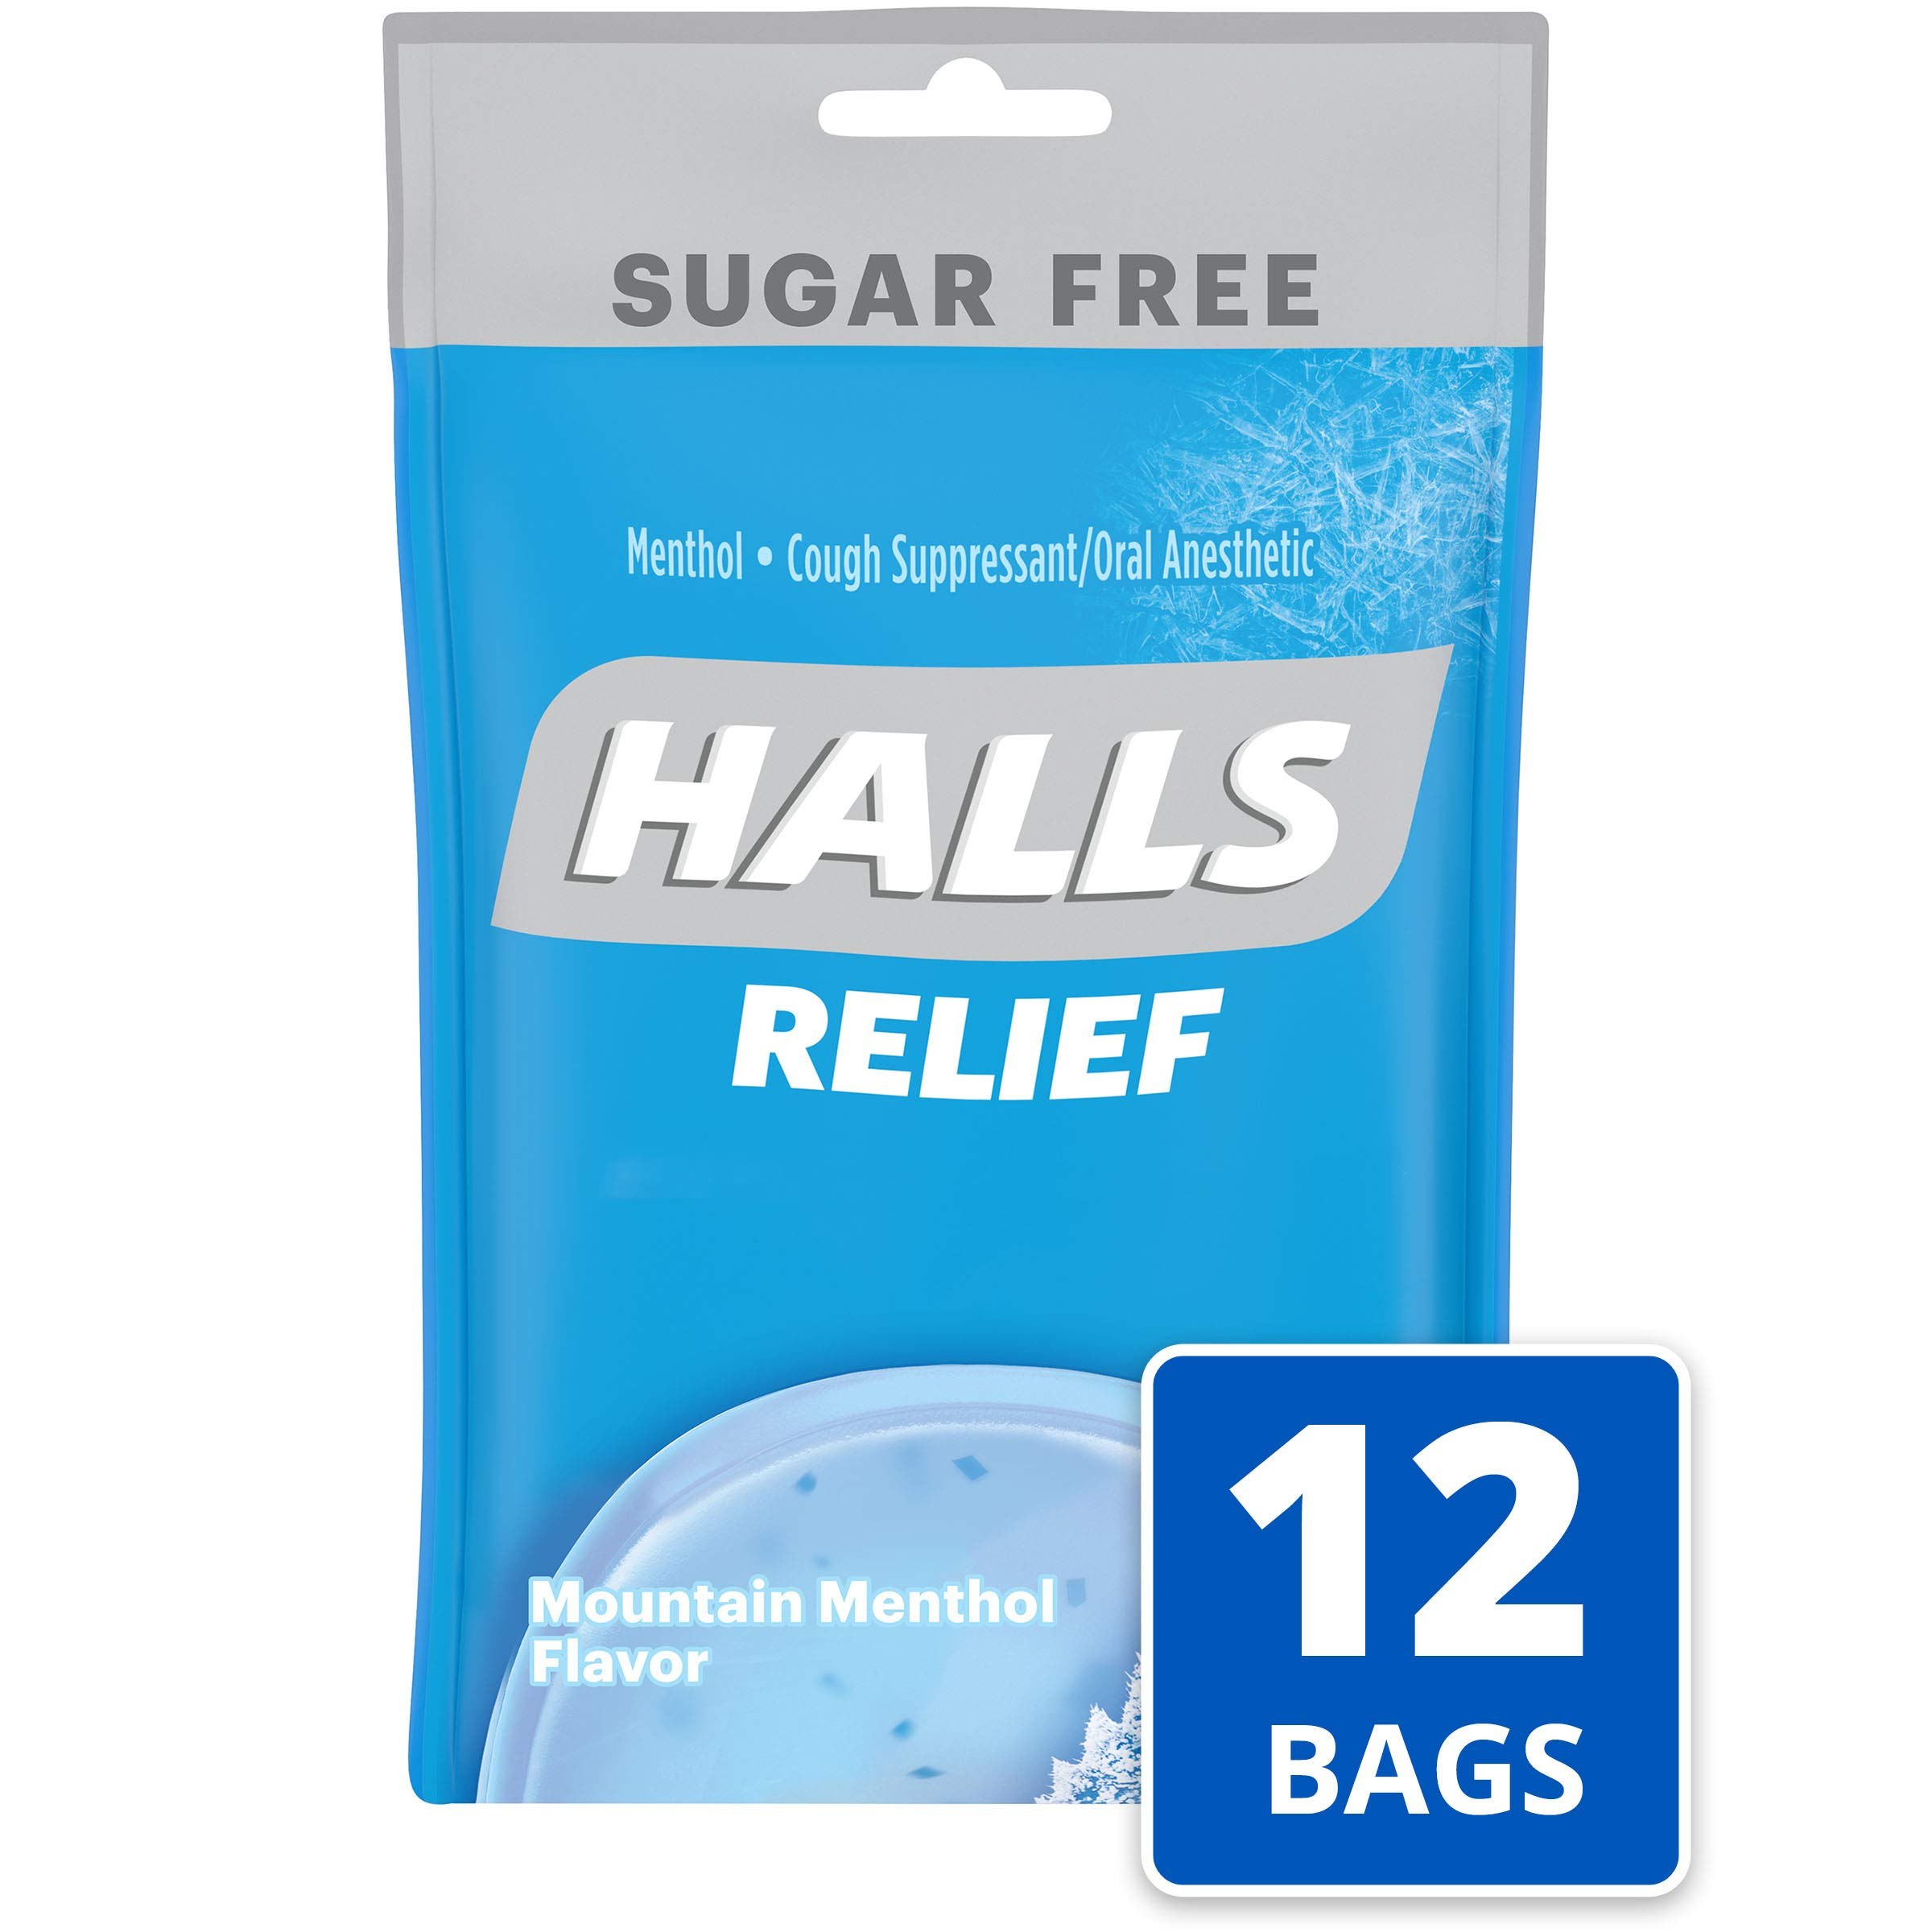 Halls Mountain Menthol Sugar Free Cough Drops - with Menthol - 300 Drops (12 bags of 25 drops) by Halls